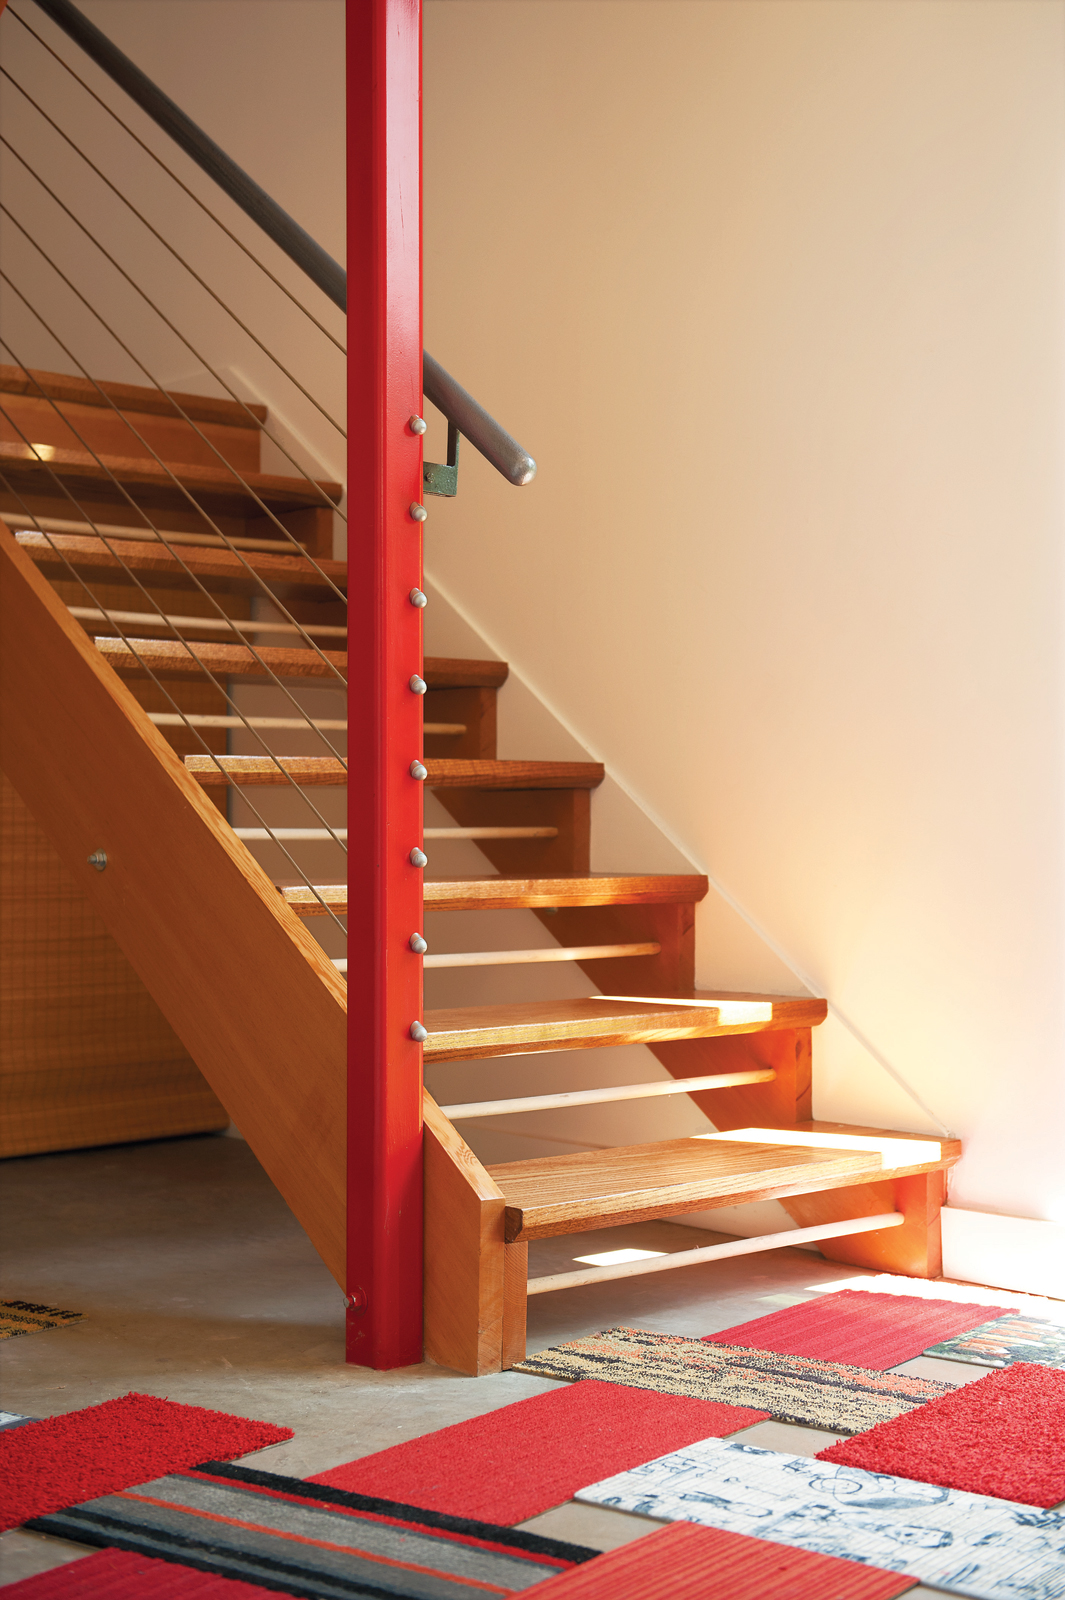 Wooden staircase with painted red pillar